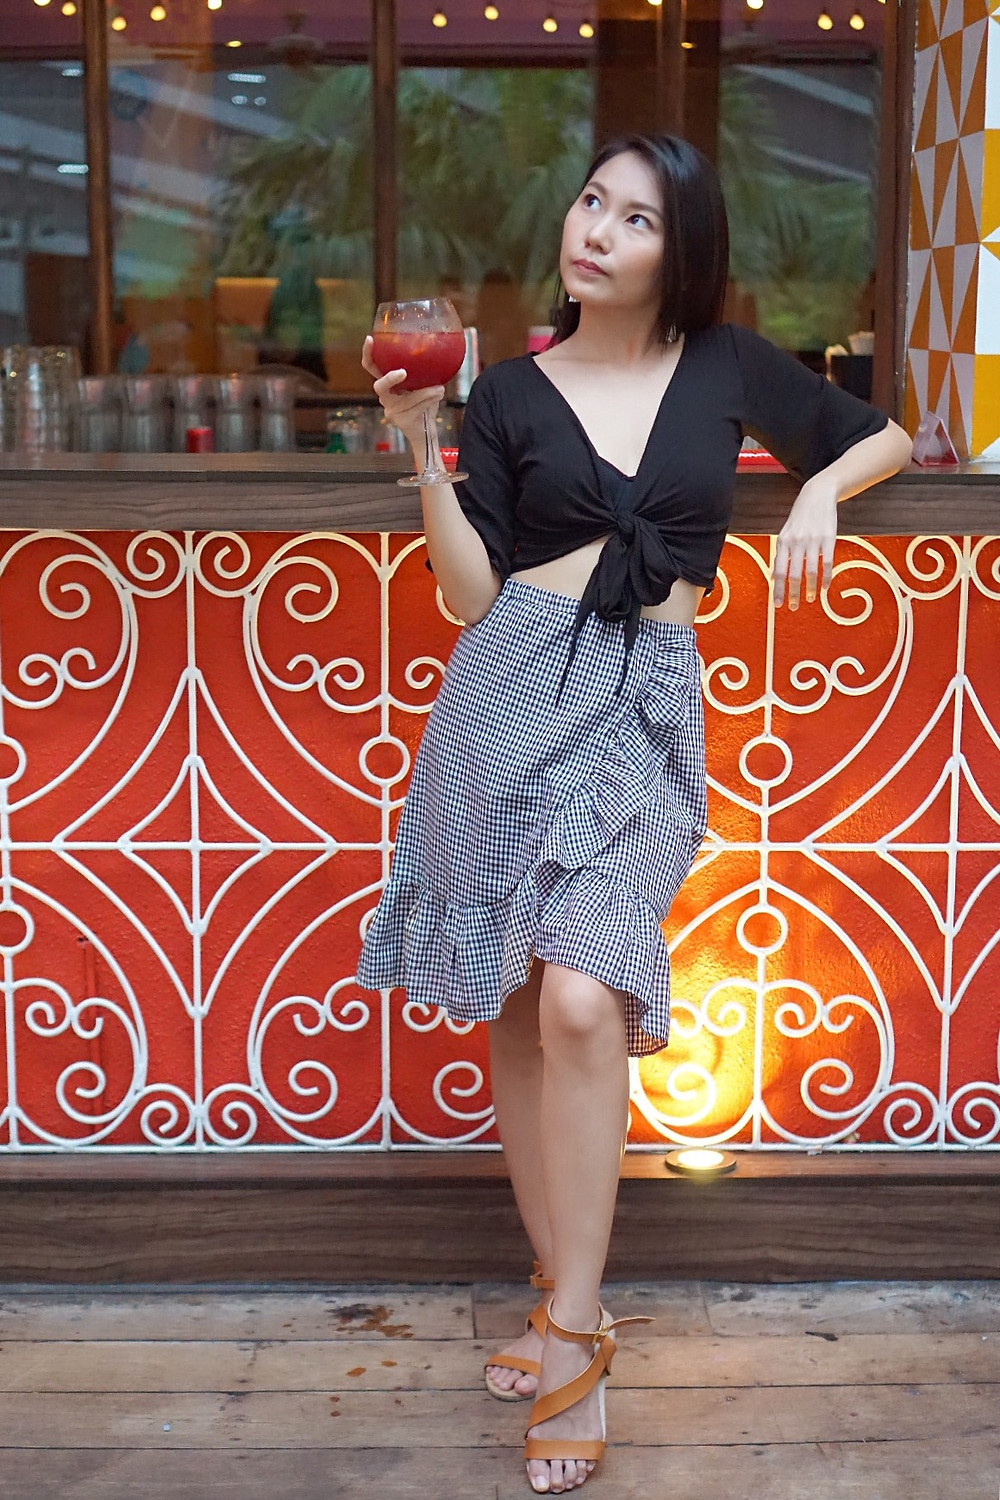 Sangria all day